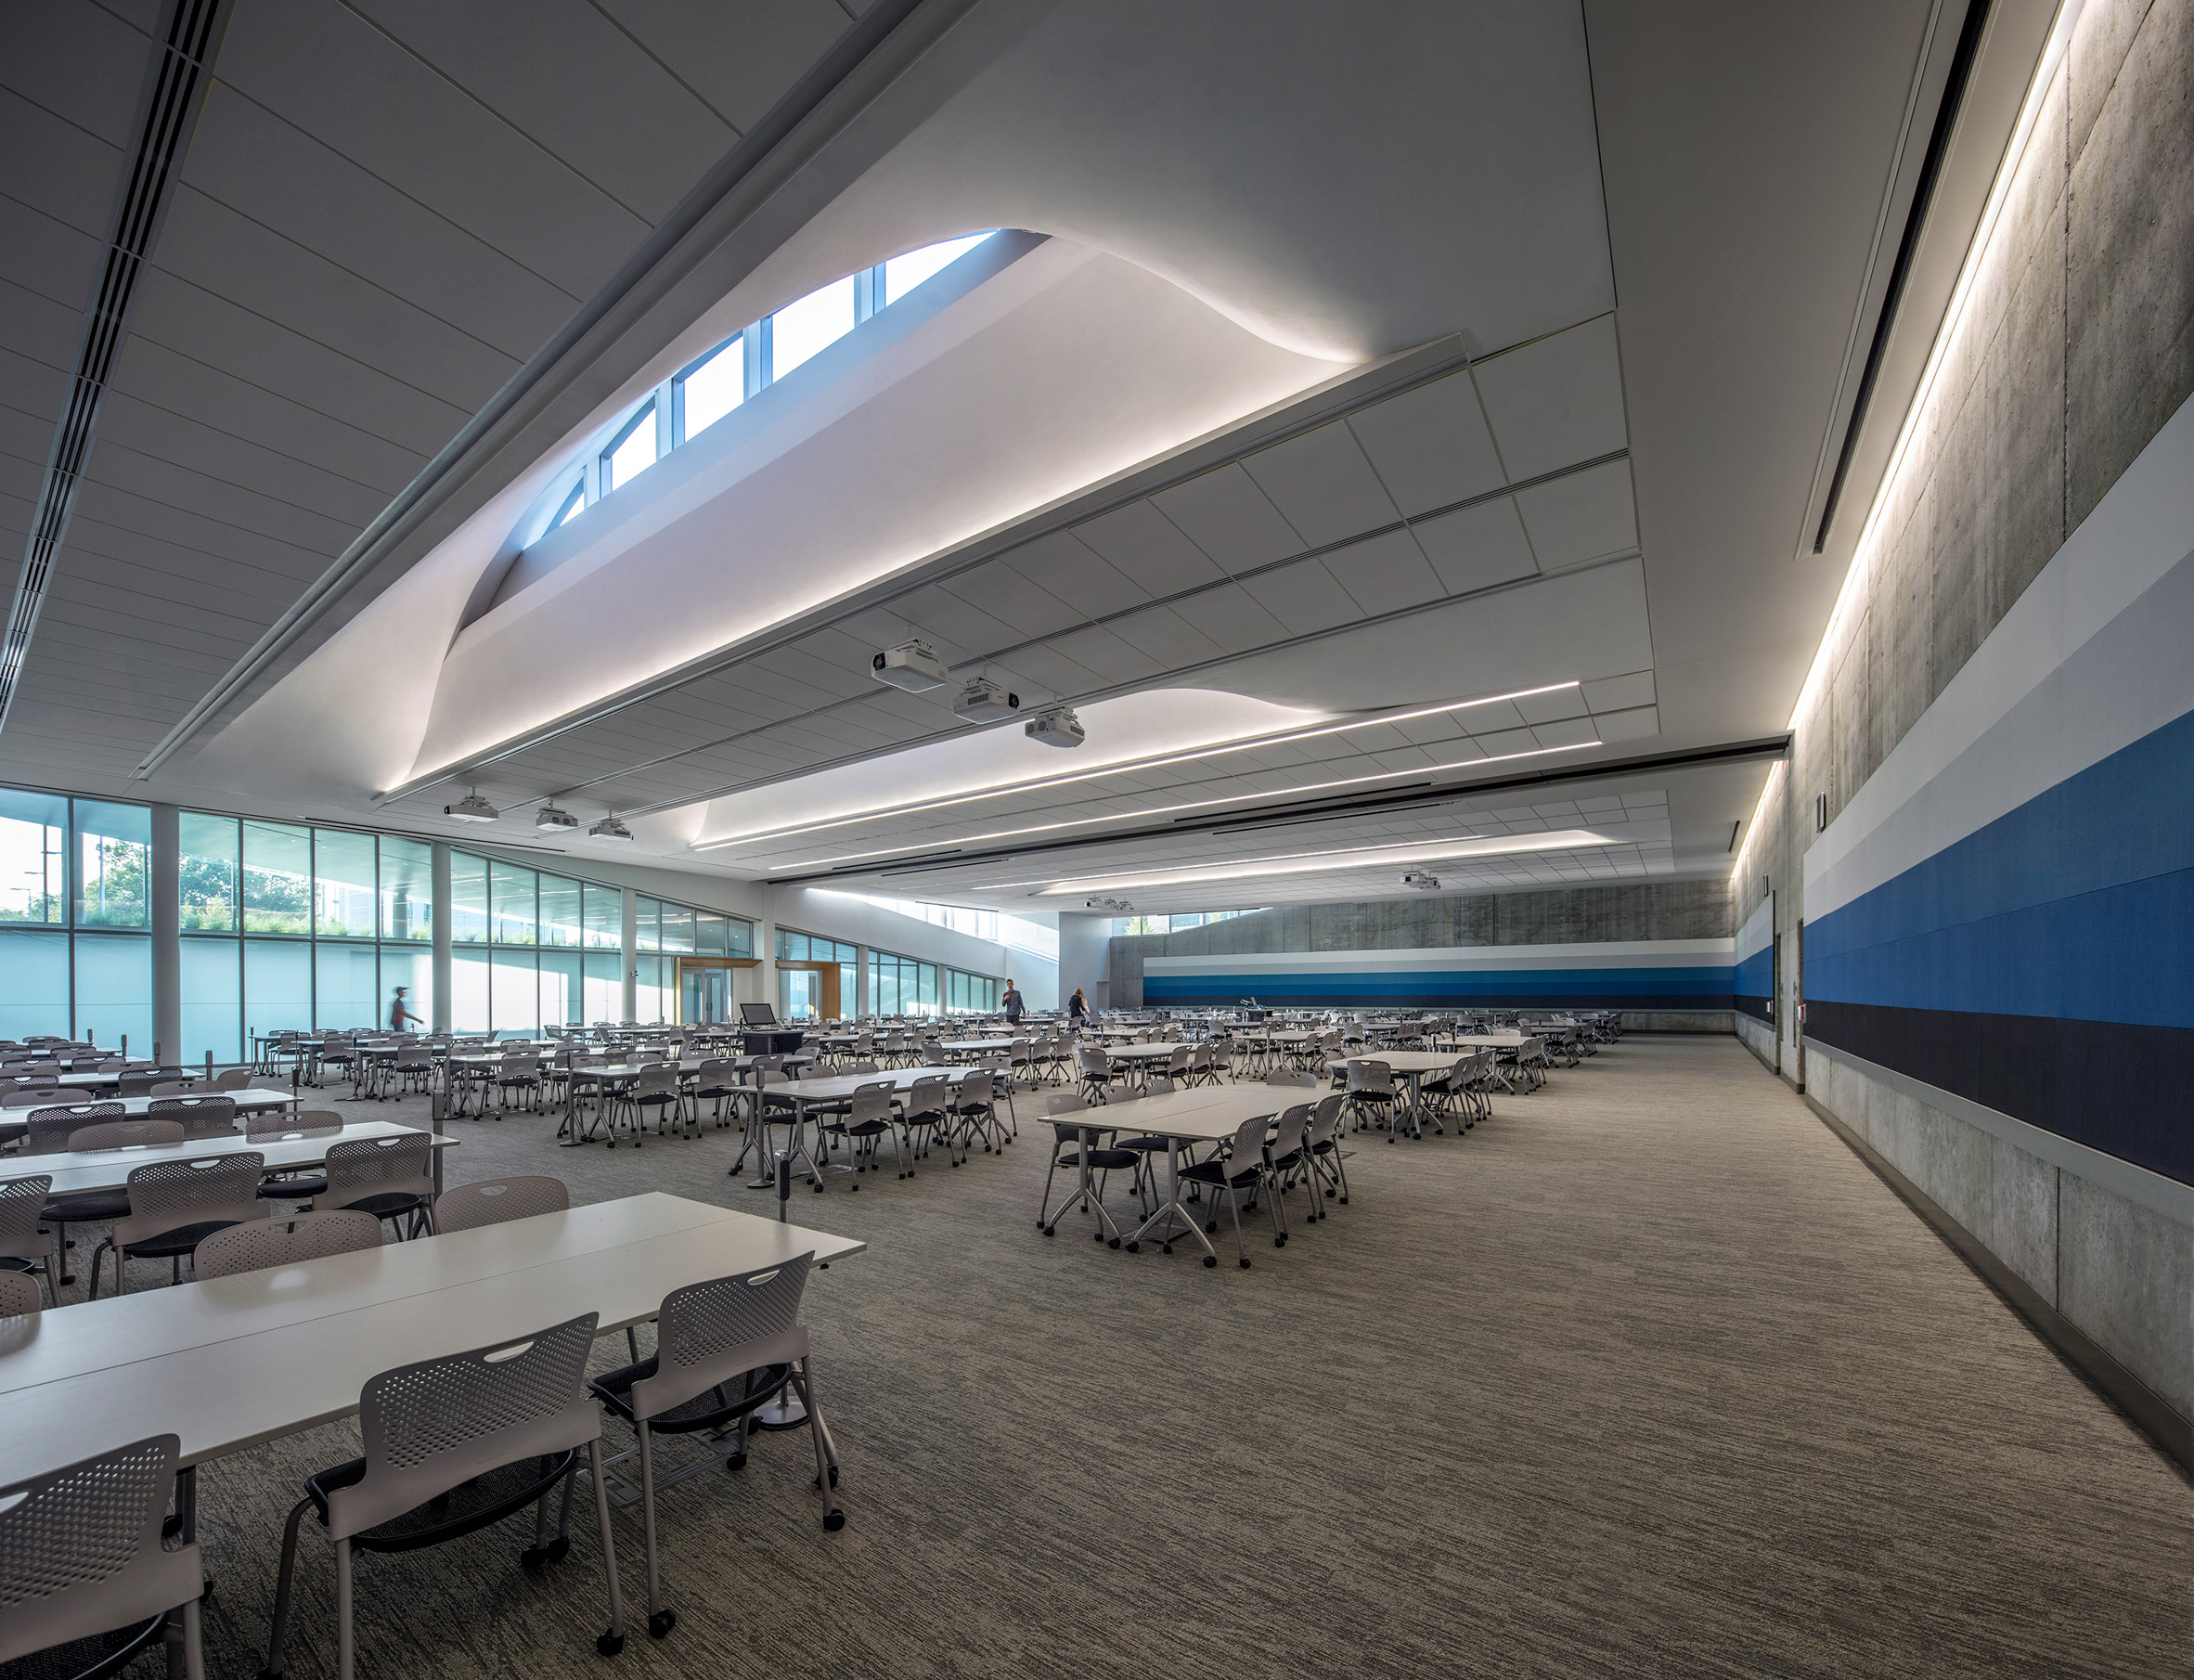 medical-center-university-of-kansas-co-architects-architecture-kansas-city-usa_dezeen_2364_col_7-852x652.jpg